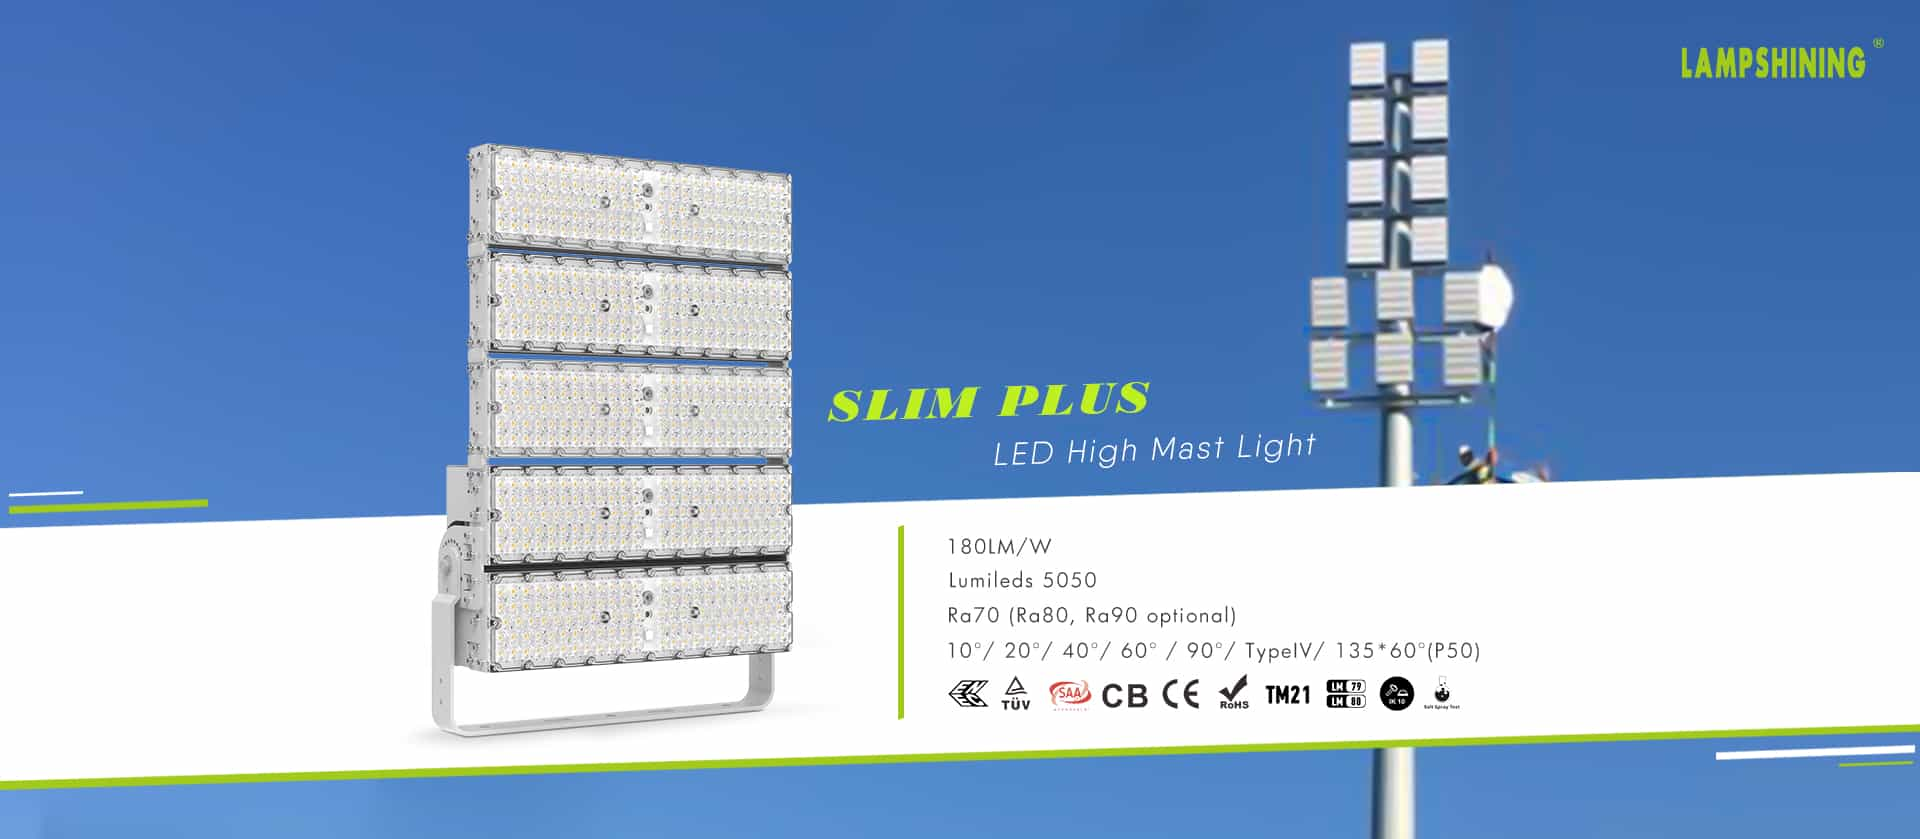 Slim Plus LED High Mast Light